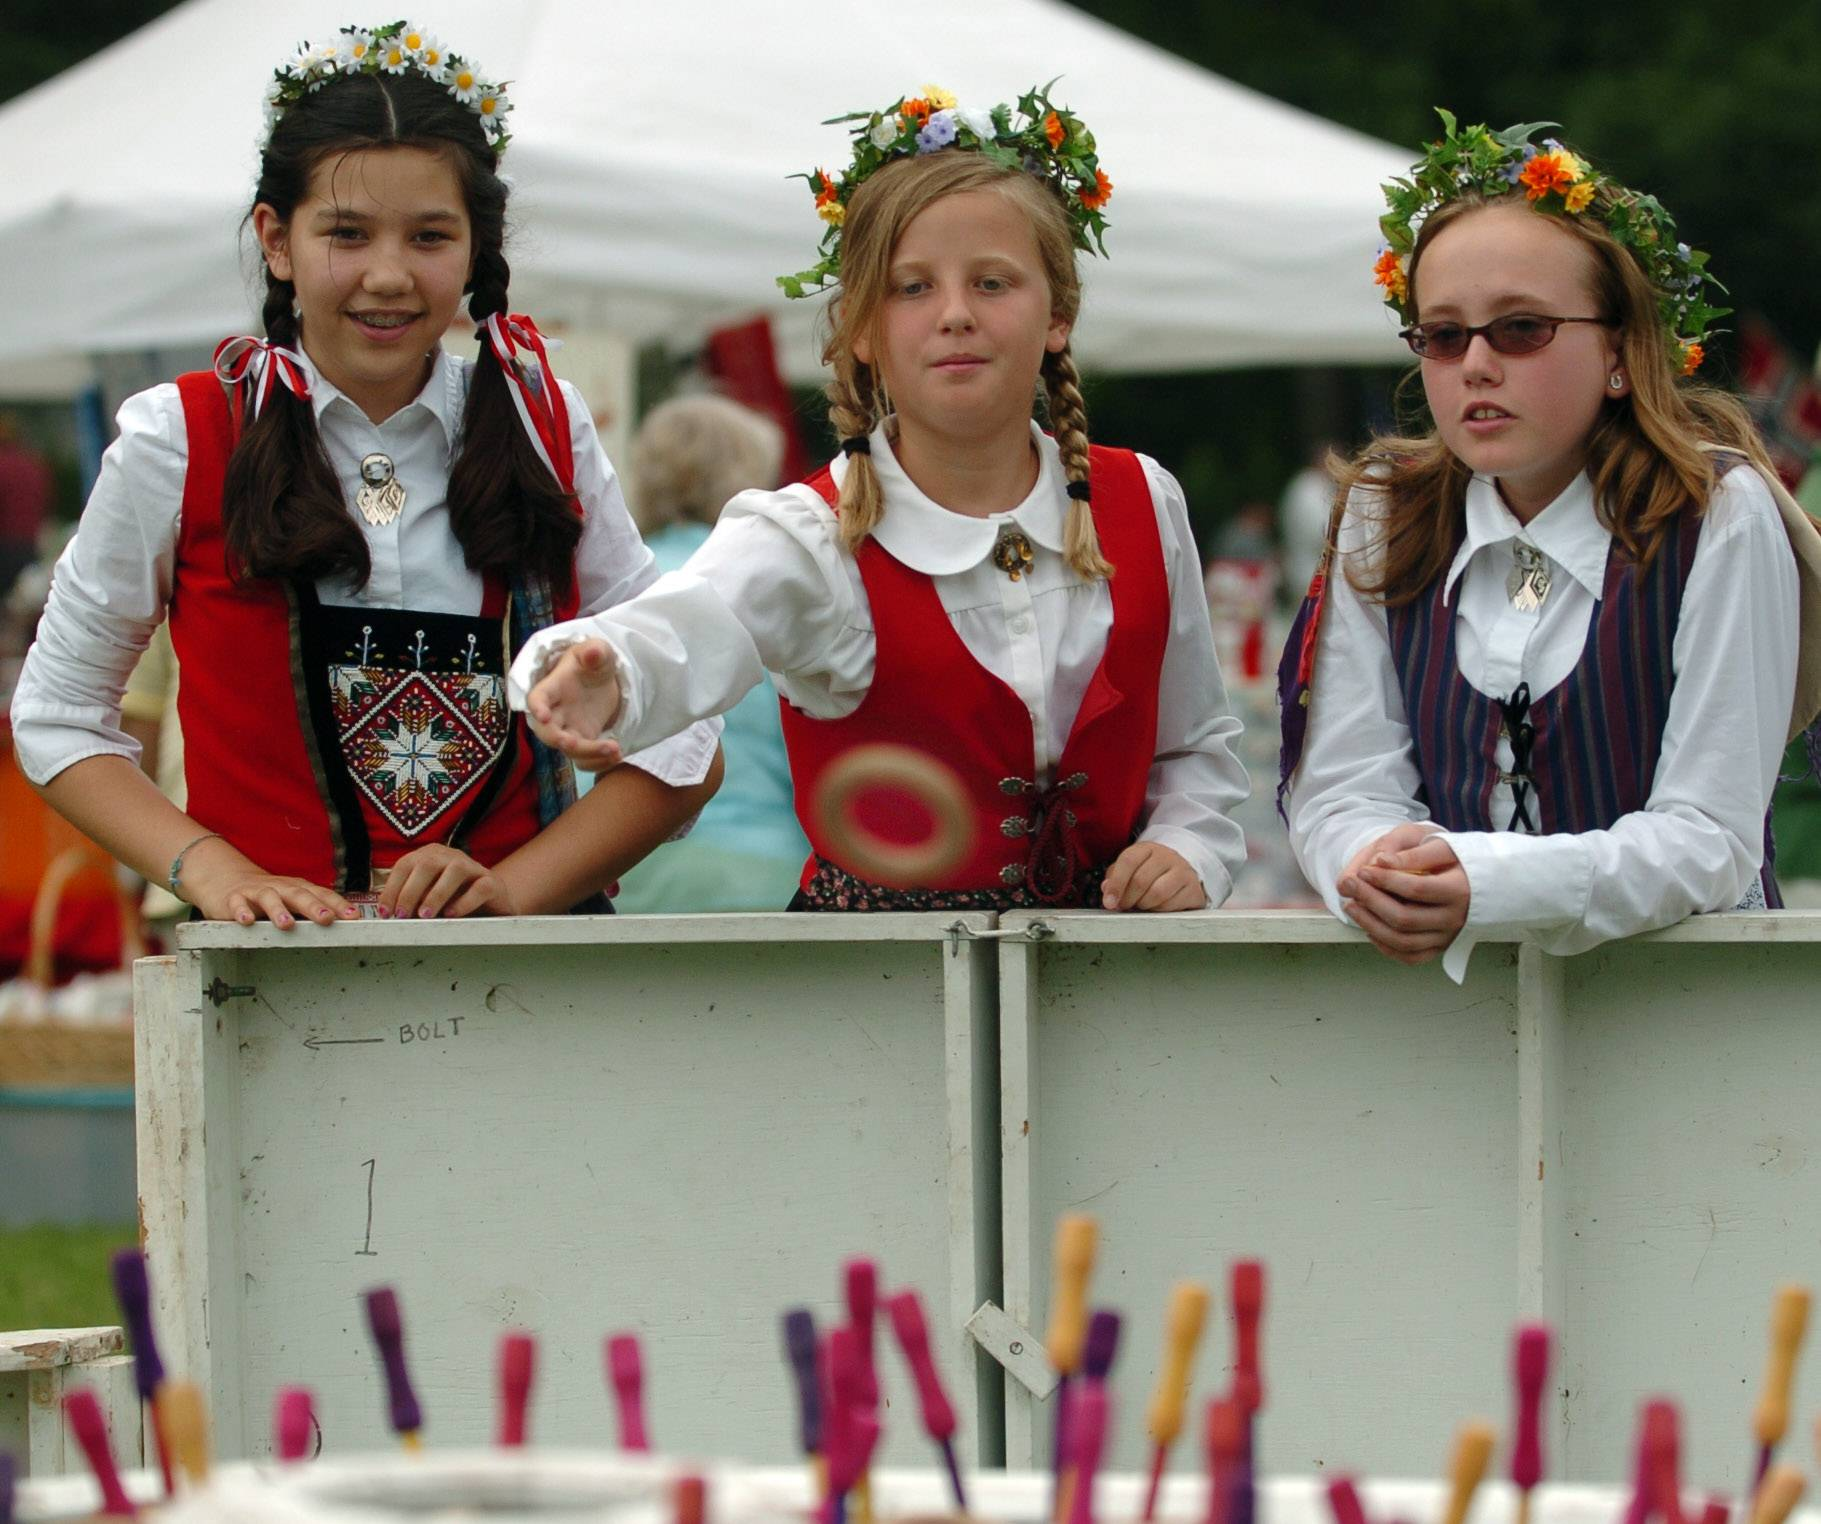 Geneva Swedish Days continues through Sunday, June 26.